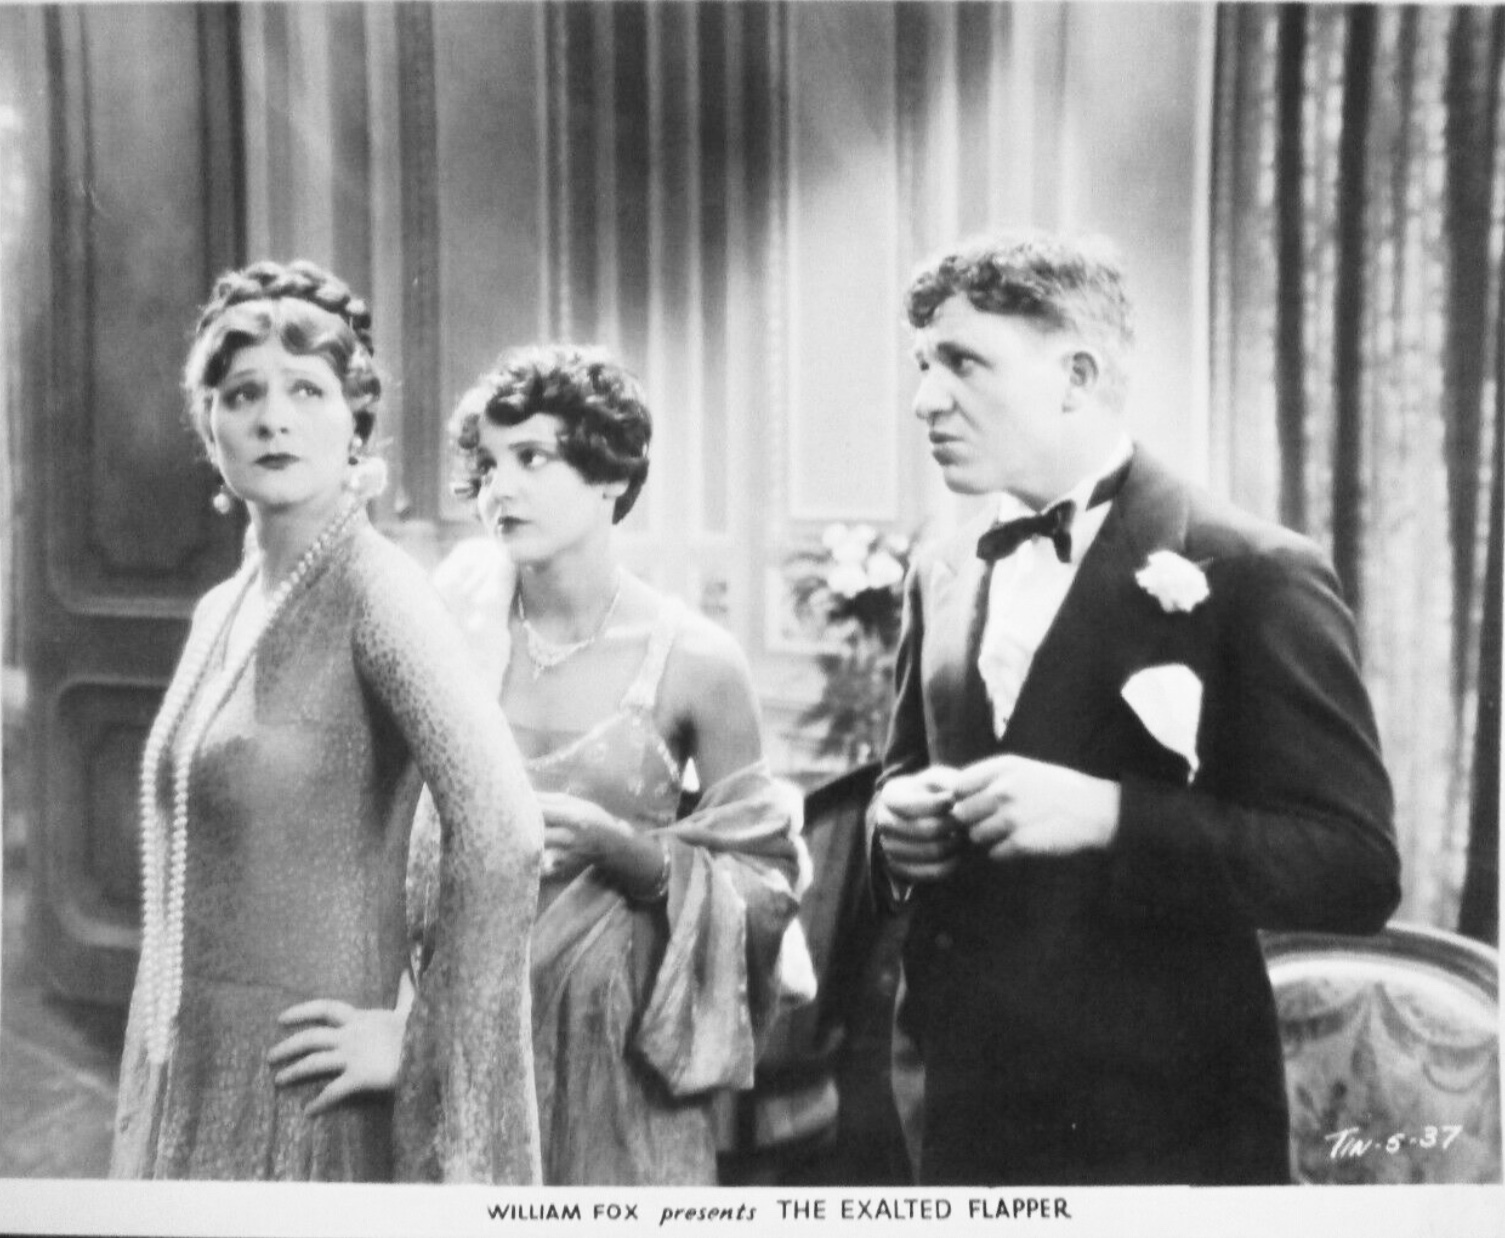 Sue Carol, Stuart Erwin, and Irene Rich in The Exalted Flapper (1929)